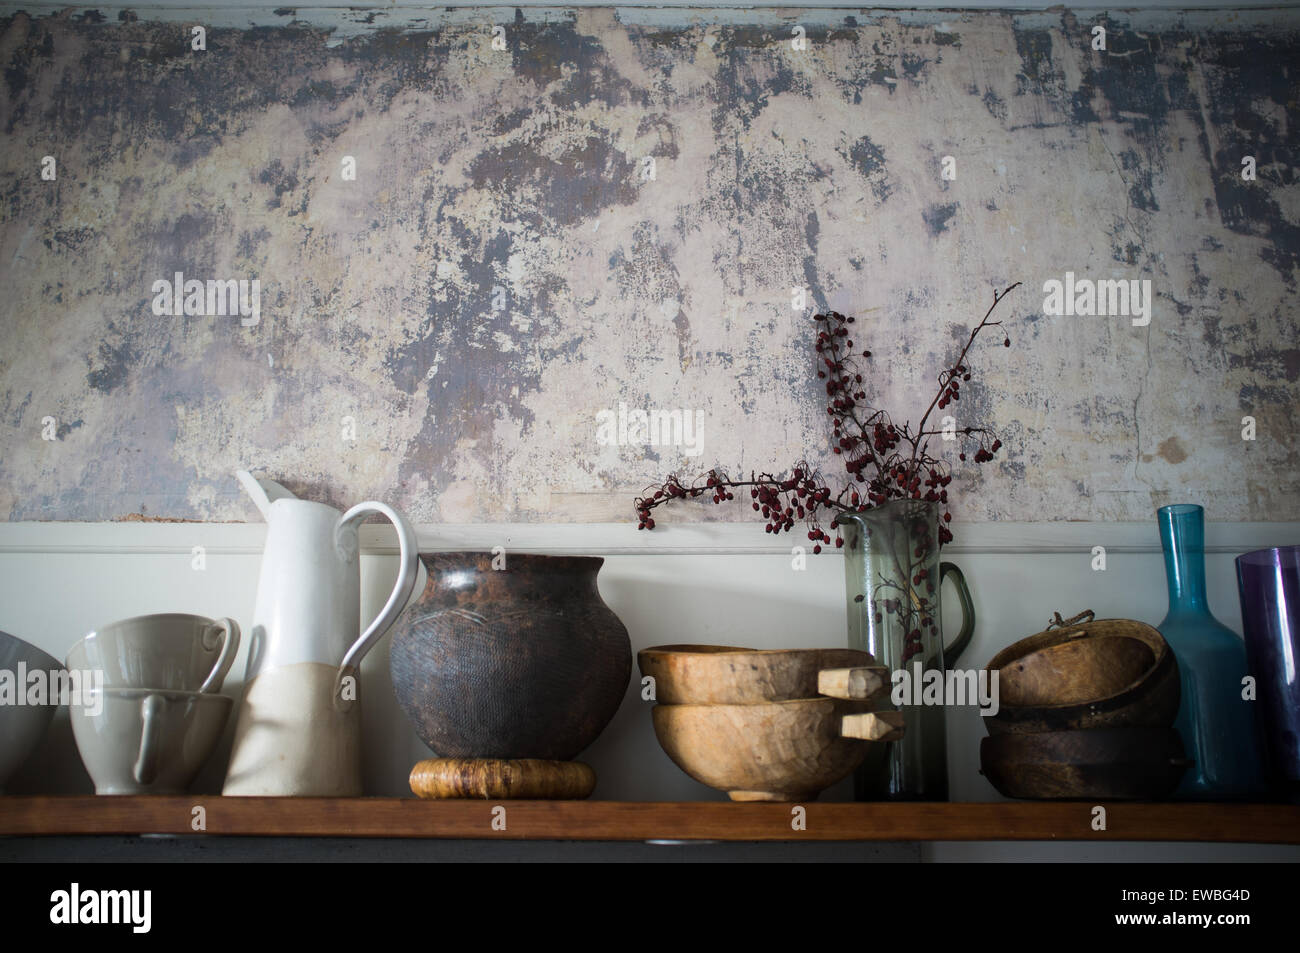 artful collection of vases and containers on kitchen shelf - Stock Image